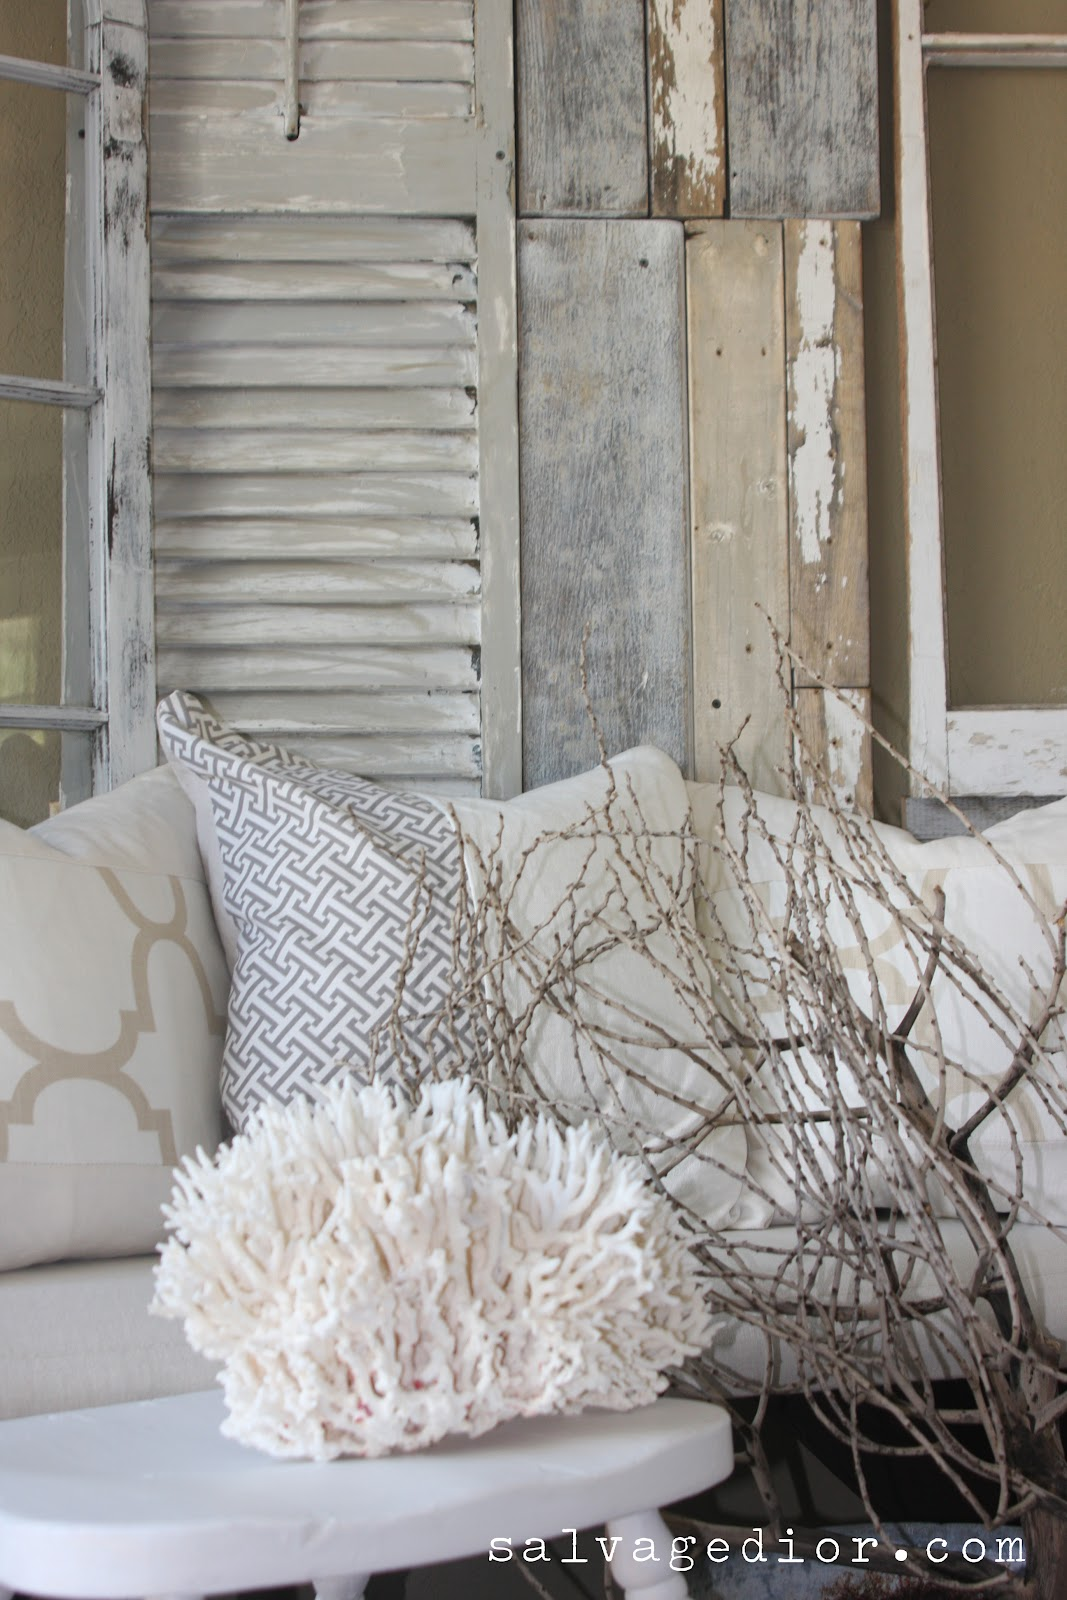 Rustic coastal summer decor an interview with salvage for Summer beach decor